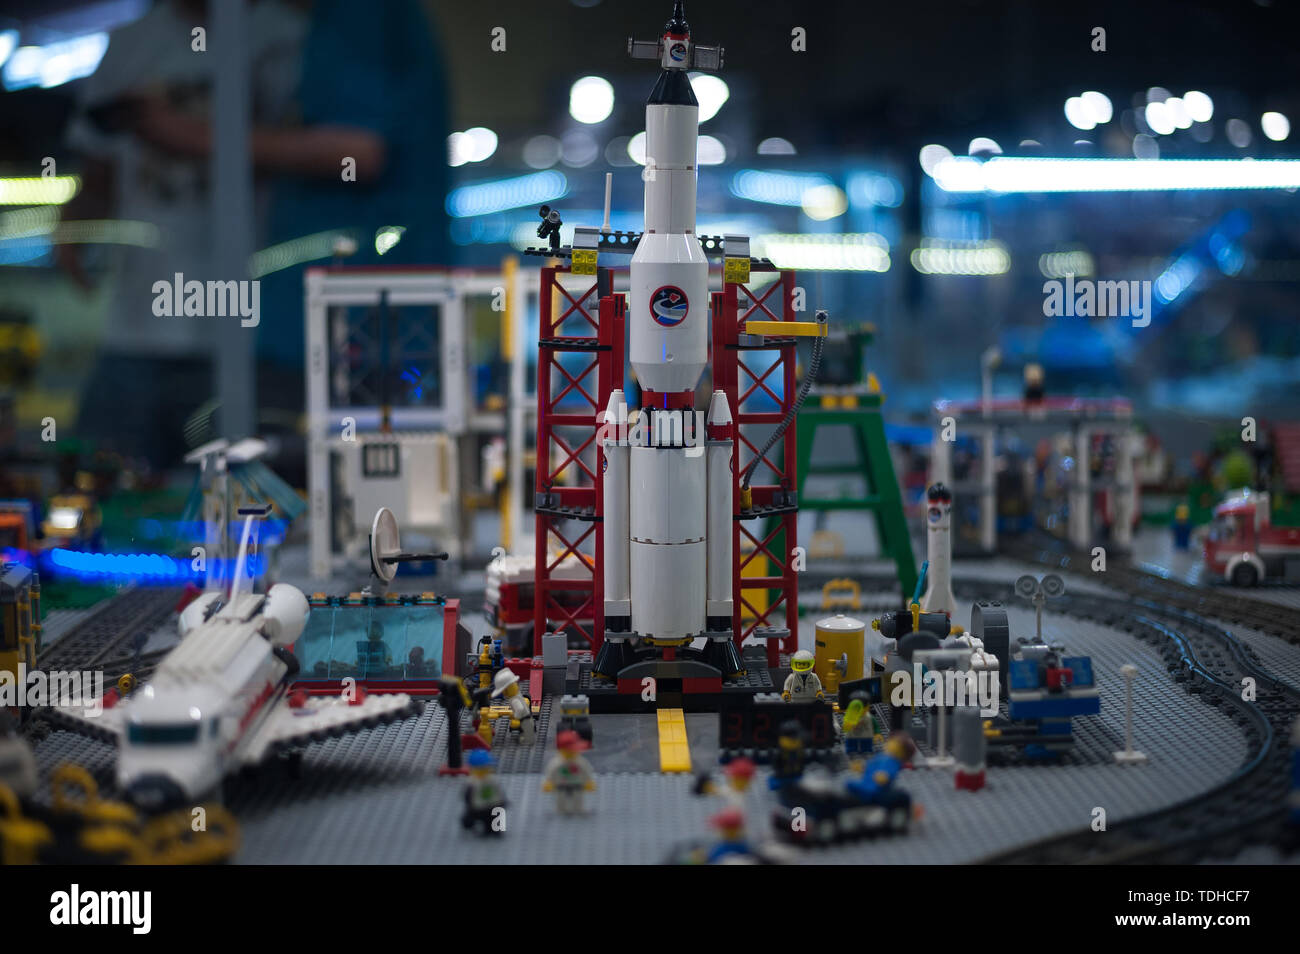 Malaga, Spain. 16th June, 2019. A mockup of a spacial station displayed inside a glass cabinet during the exhibition. The LEGO exhibition is a temporary exhibition, the most biggest of Europe about figures of LEGO, showing different mockups mounted with more than 5 million of LEGO pieces to large scale such as Titanic ship, replicas of basketball players, the human body, characters of the film Star Wars, MARVEL and others. Credit: SOPA Images Limited/Alamy Live News Stock Photo